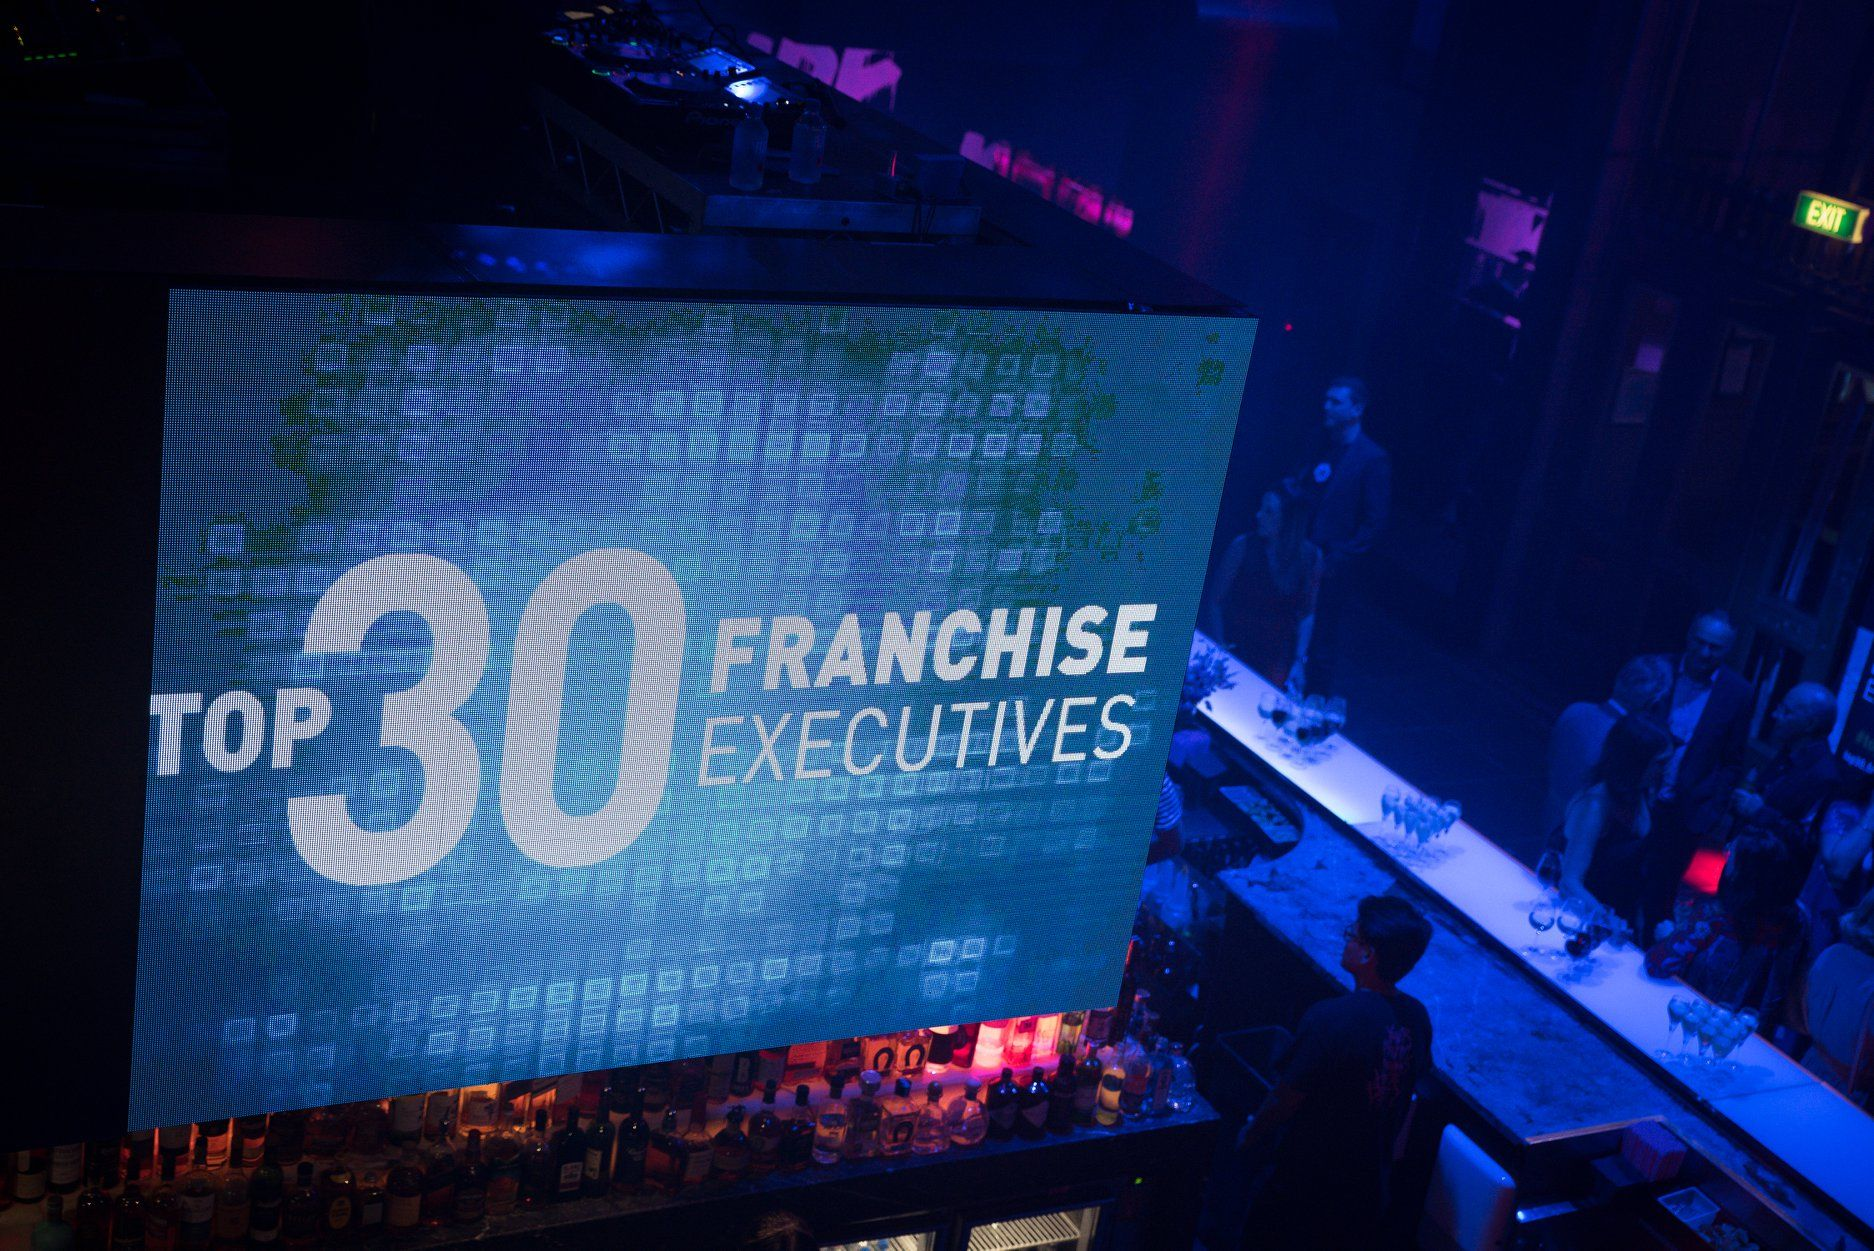 Top 30 event | Inside Franchise Business Executive